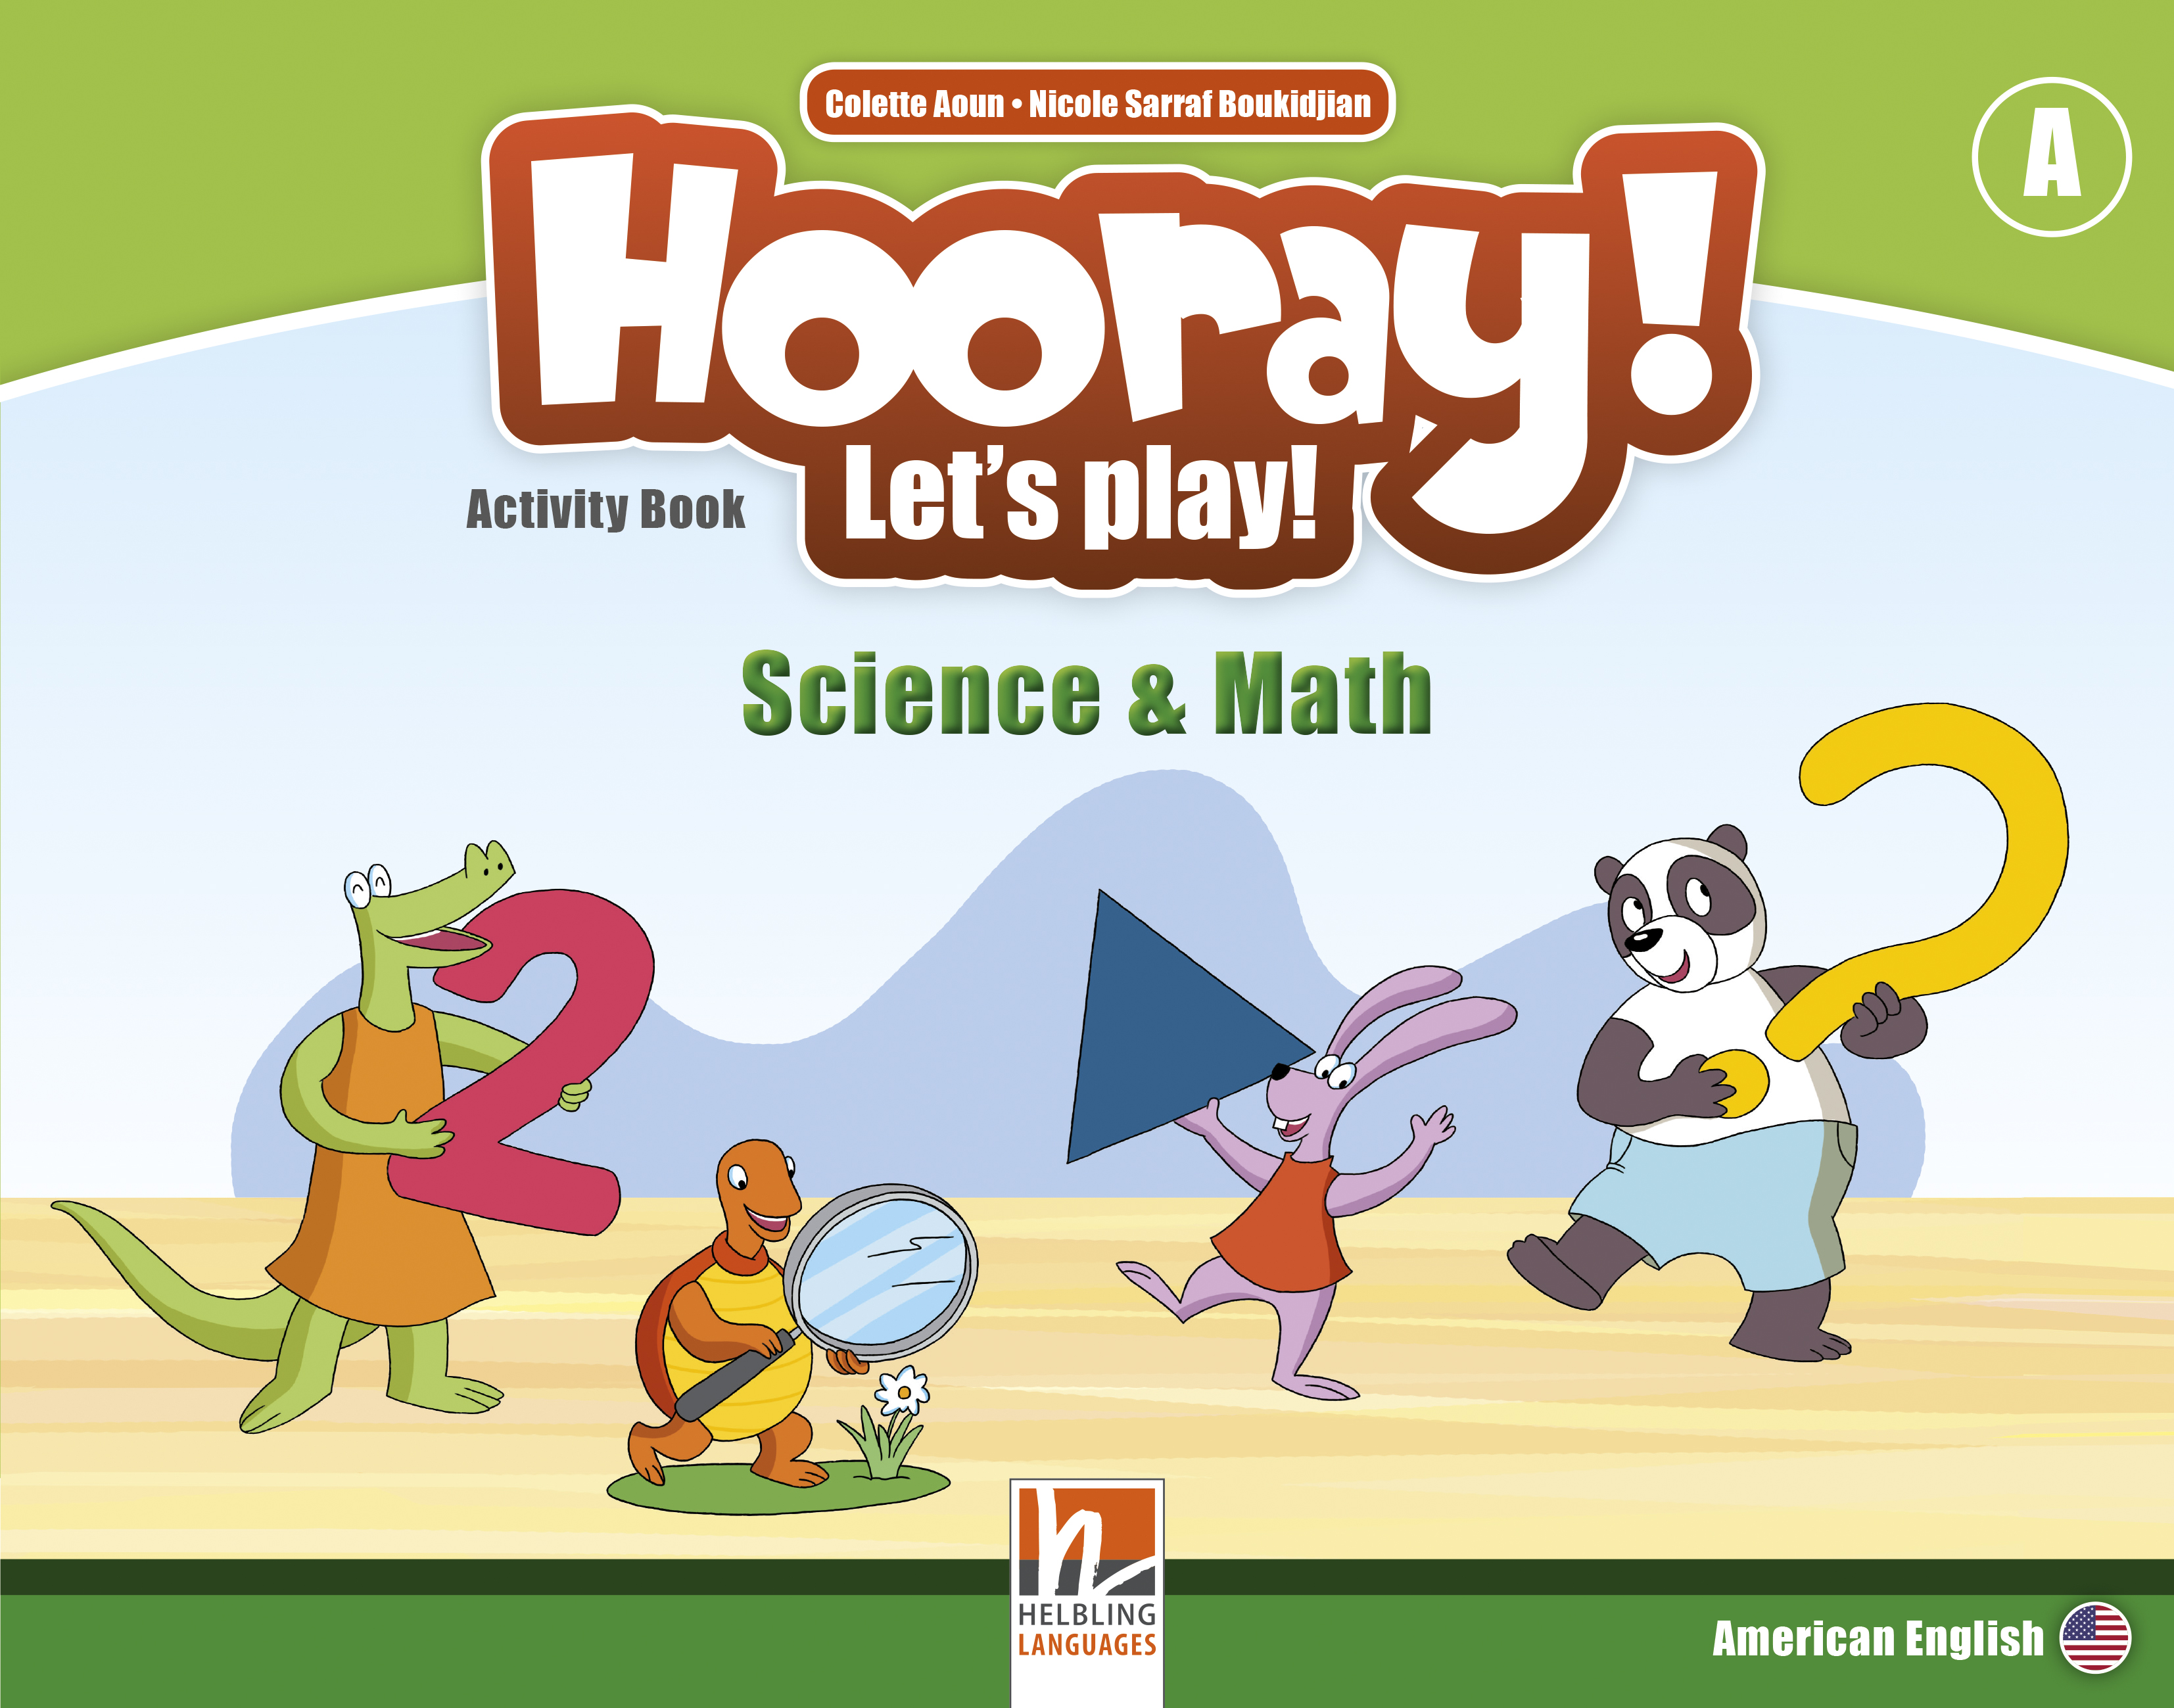 Hooray! Let's Play! Math and Science Activity Books